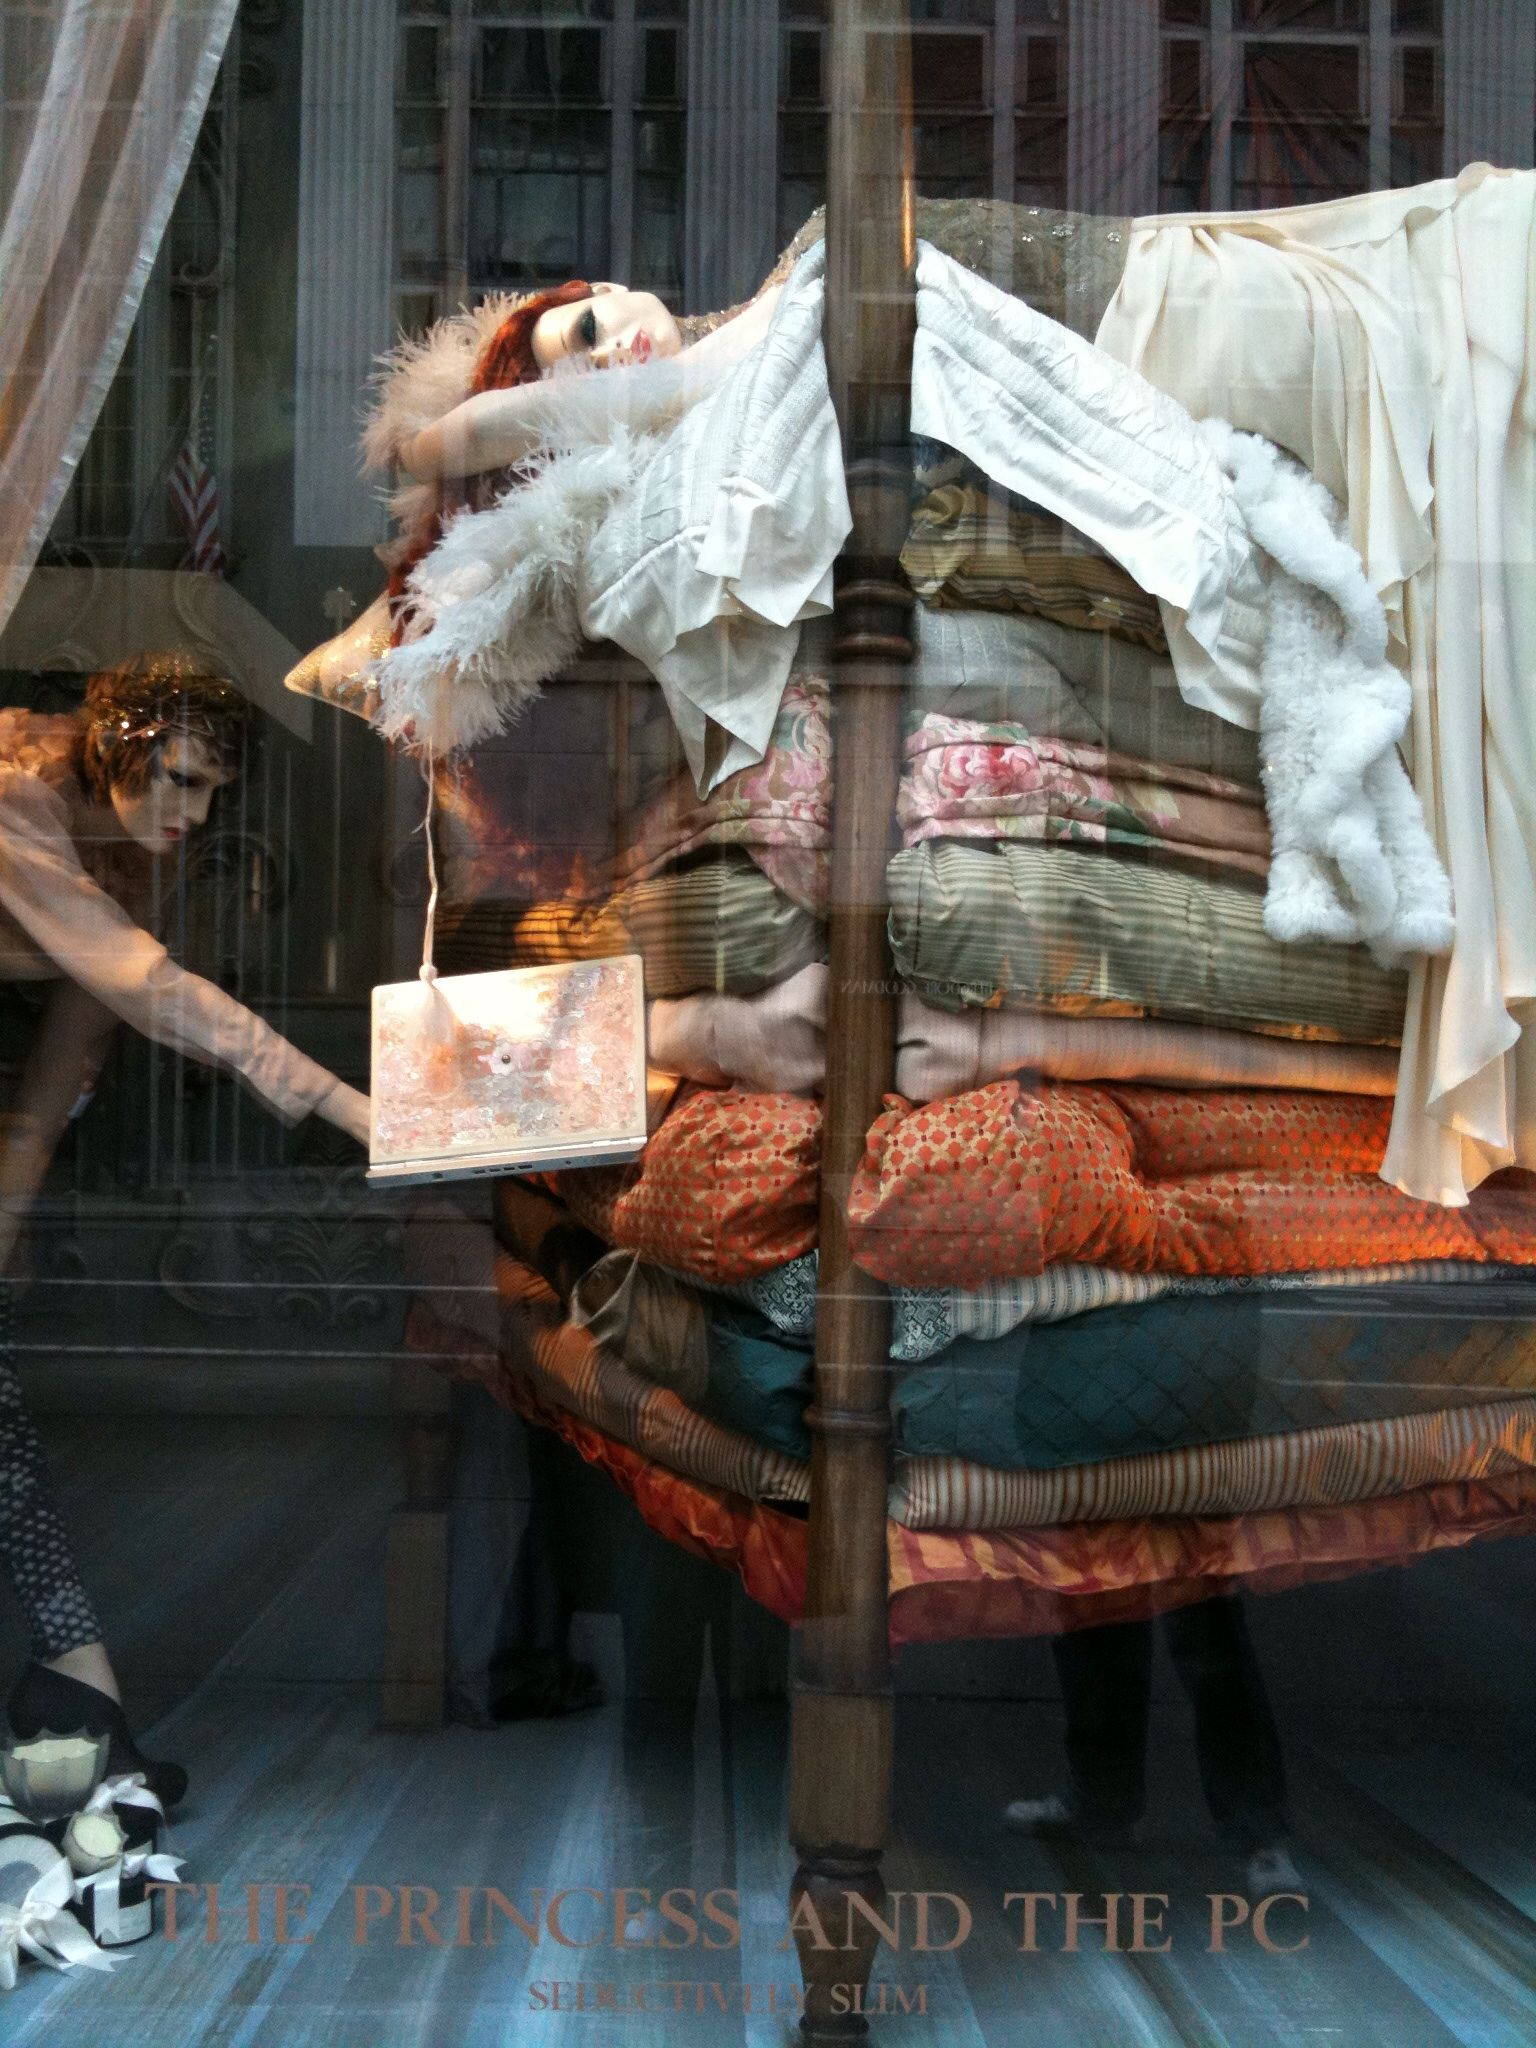 NYC shop window